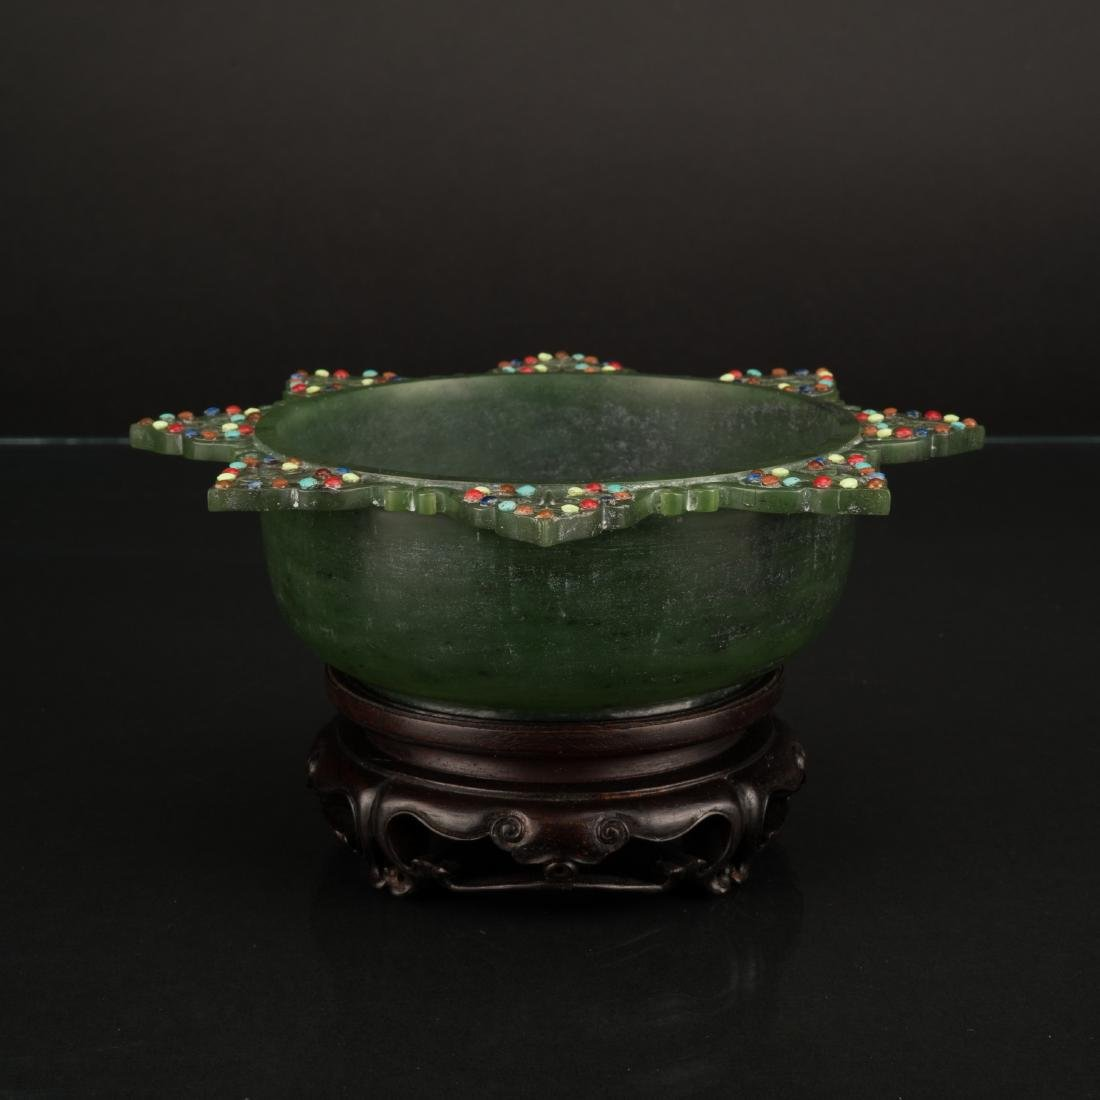 A GREEN JADE INLAID 8 CORNERED BOWL ON STAND